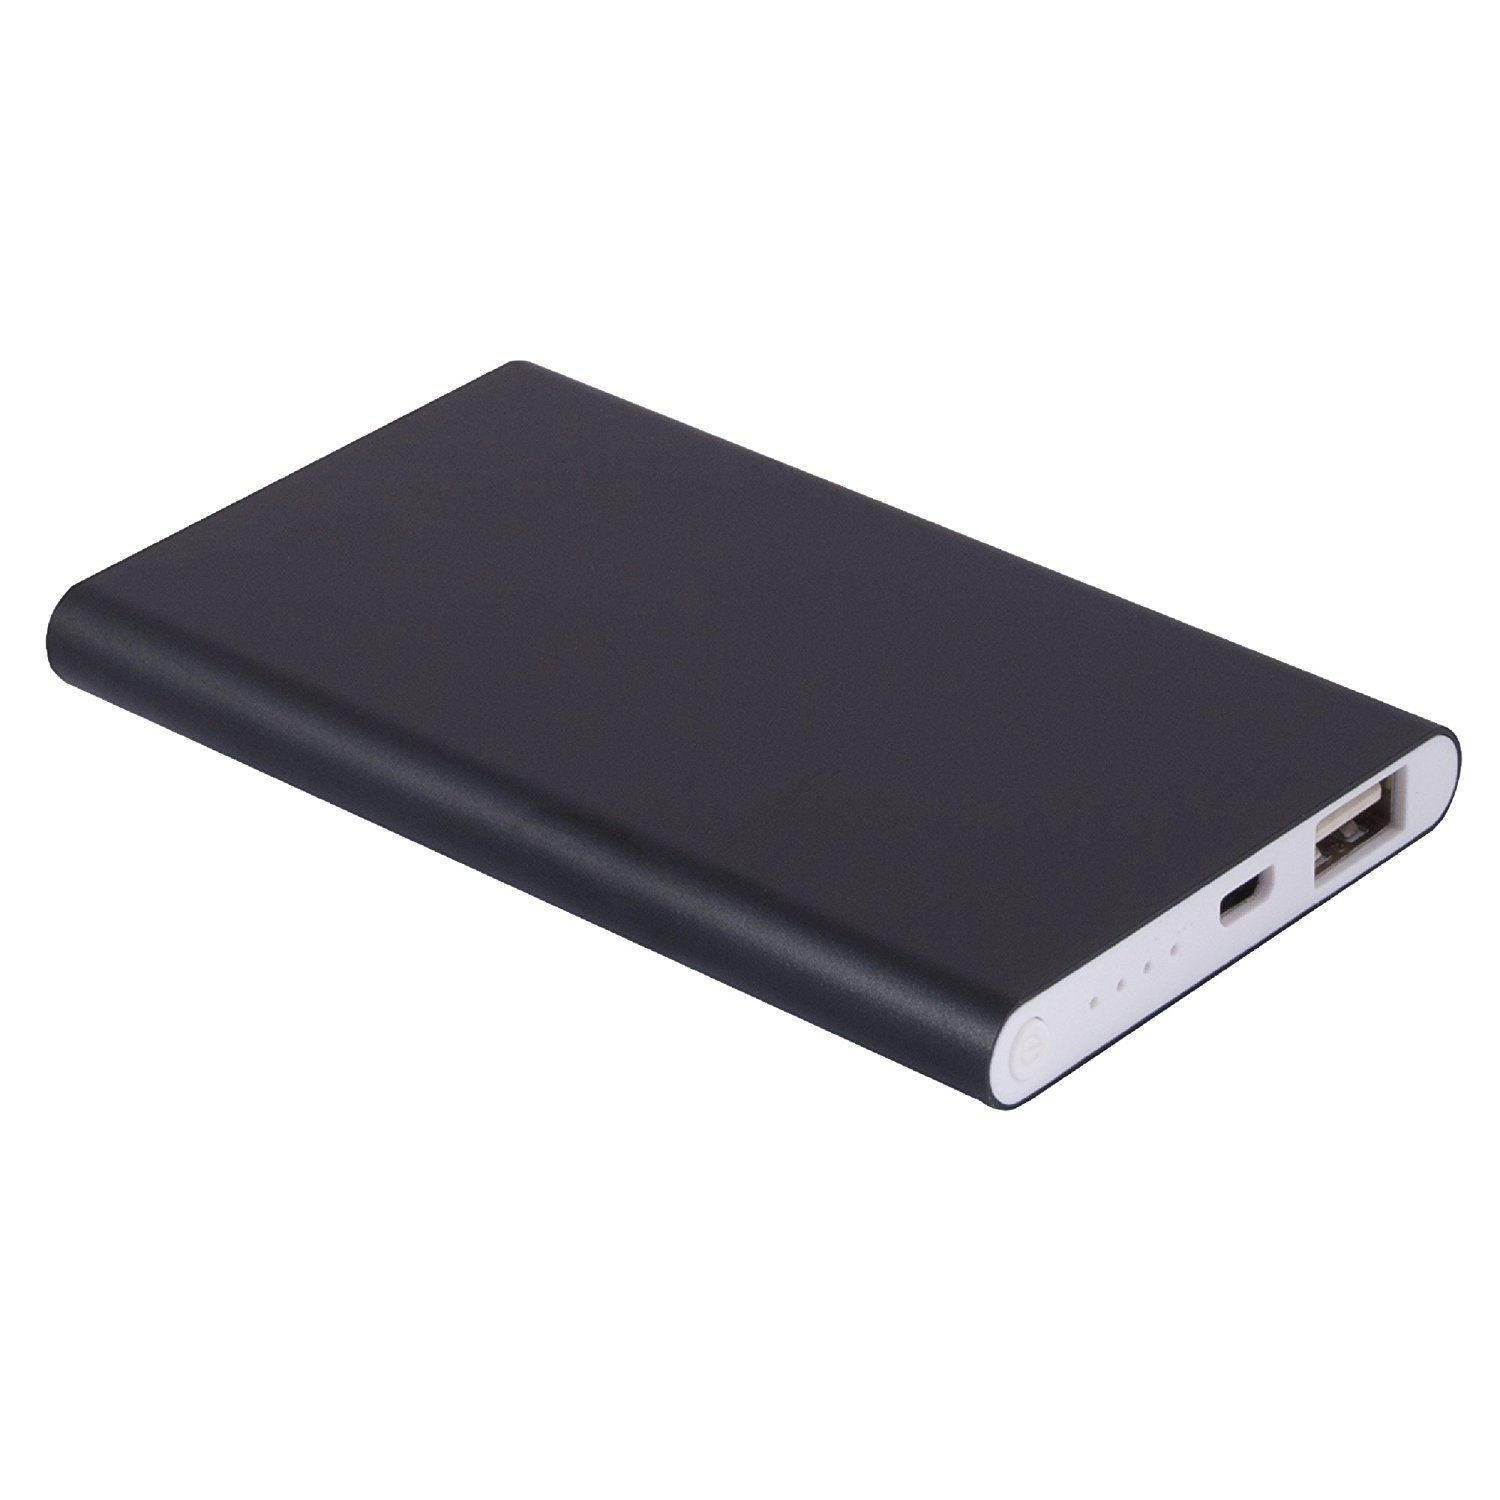 BHD Tech 5000 mAh Portable Power Bank Dual USB 2.1A Output iPhone iPad in Black